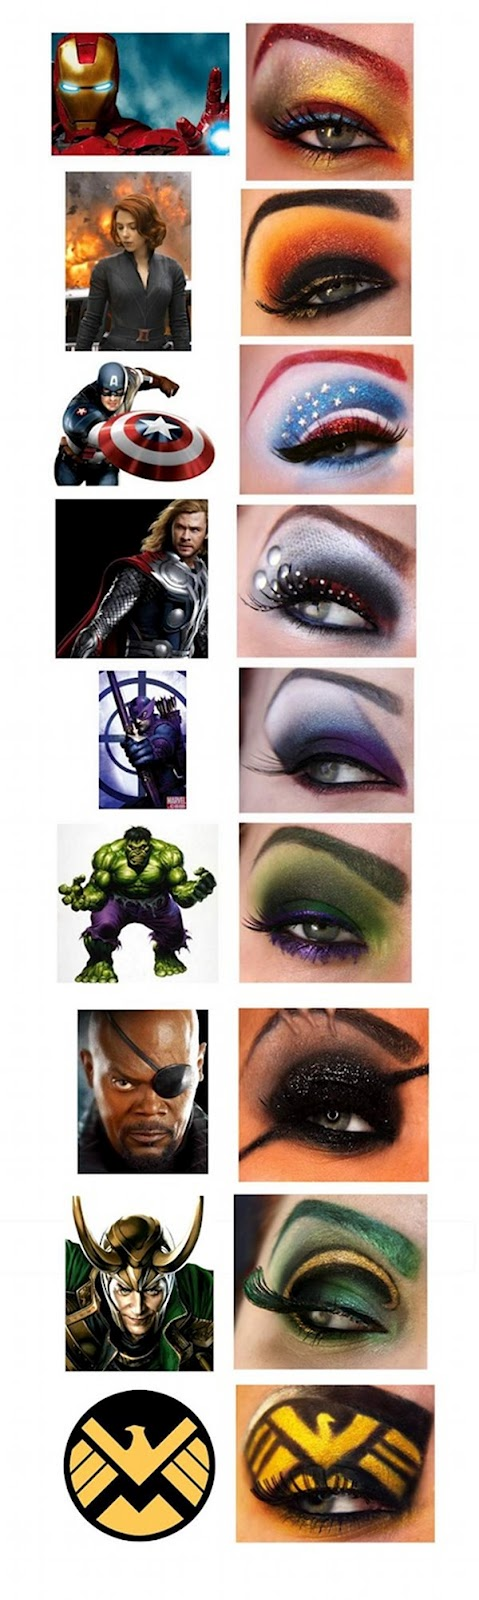 Eye Makeup from the Avengers